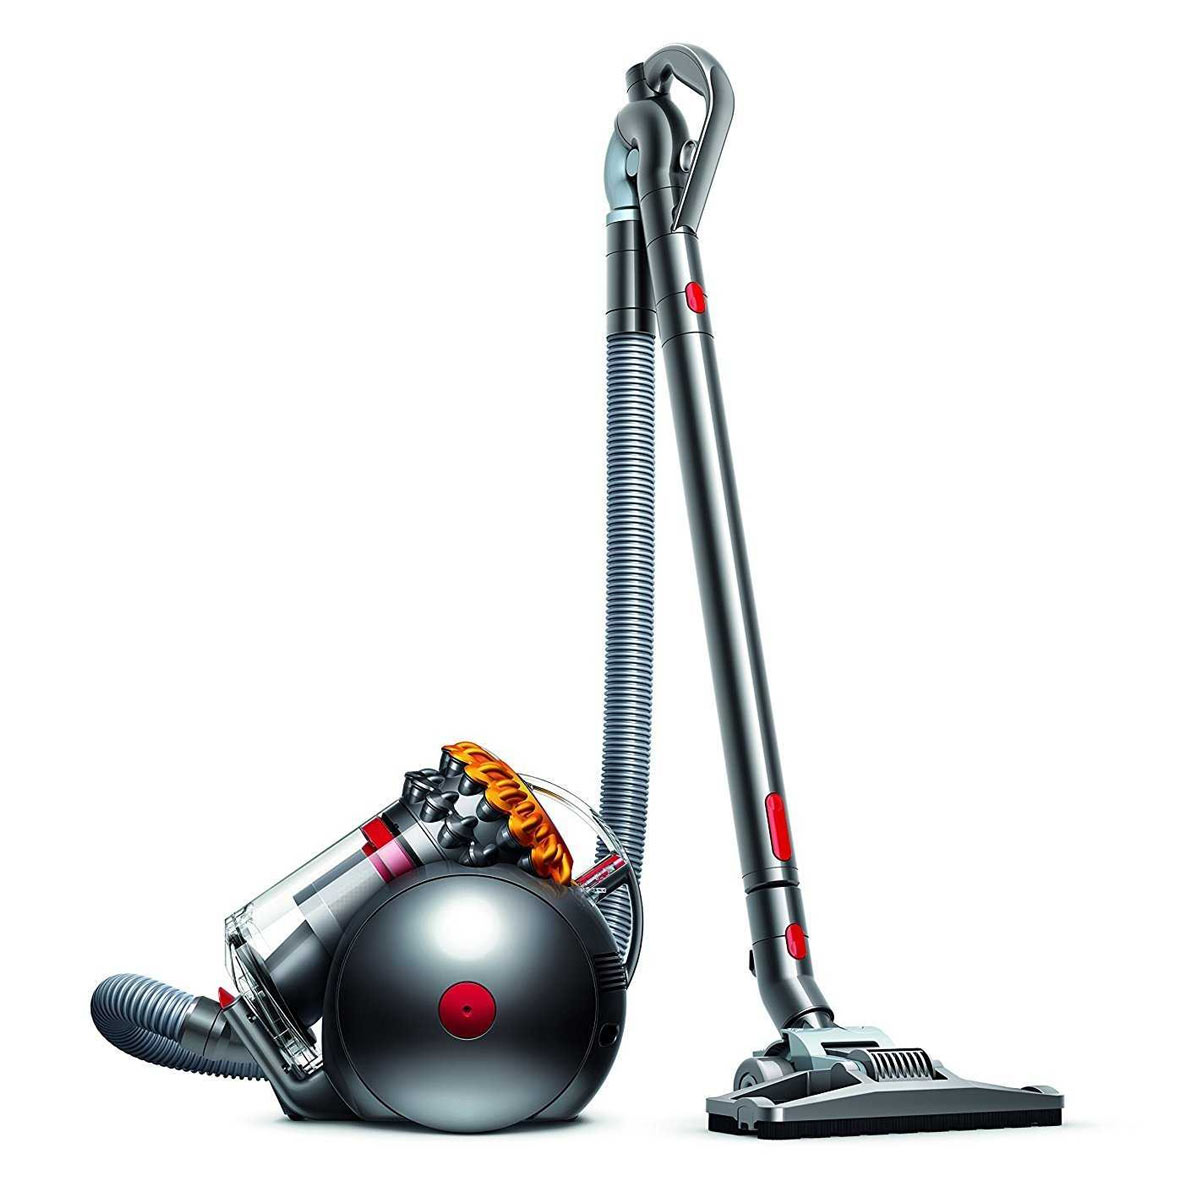 Dyson vacuum cinetic big ball animal pro dyson насадка универсальная